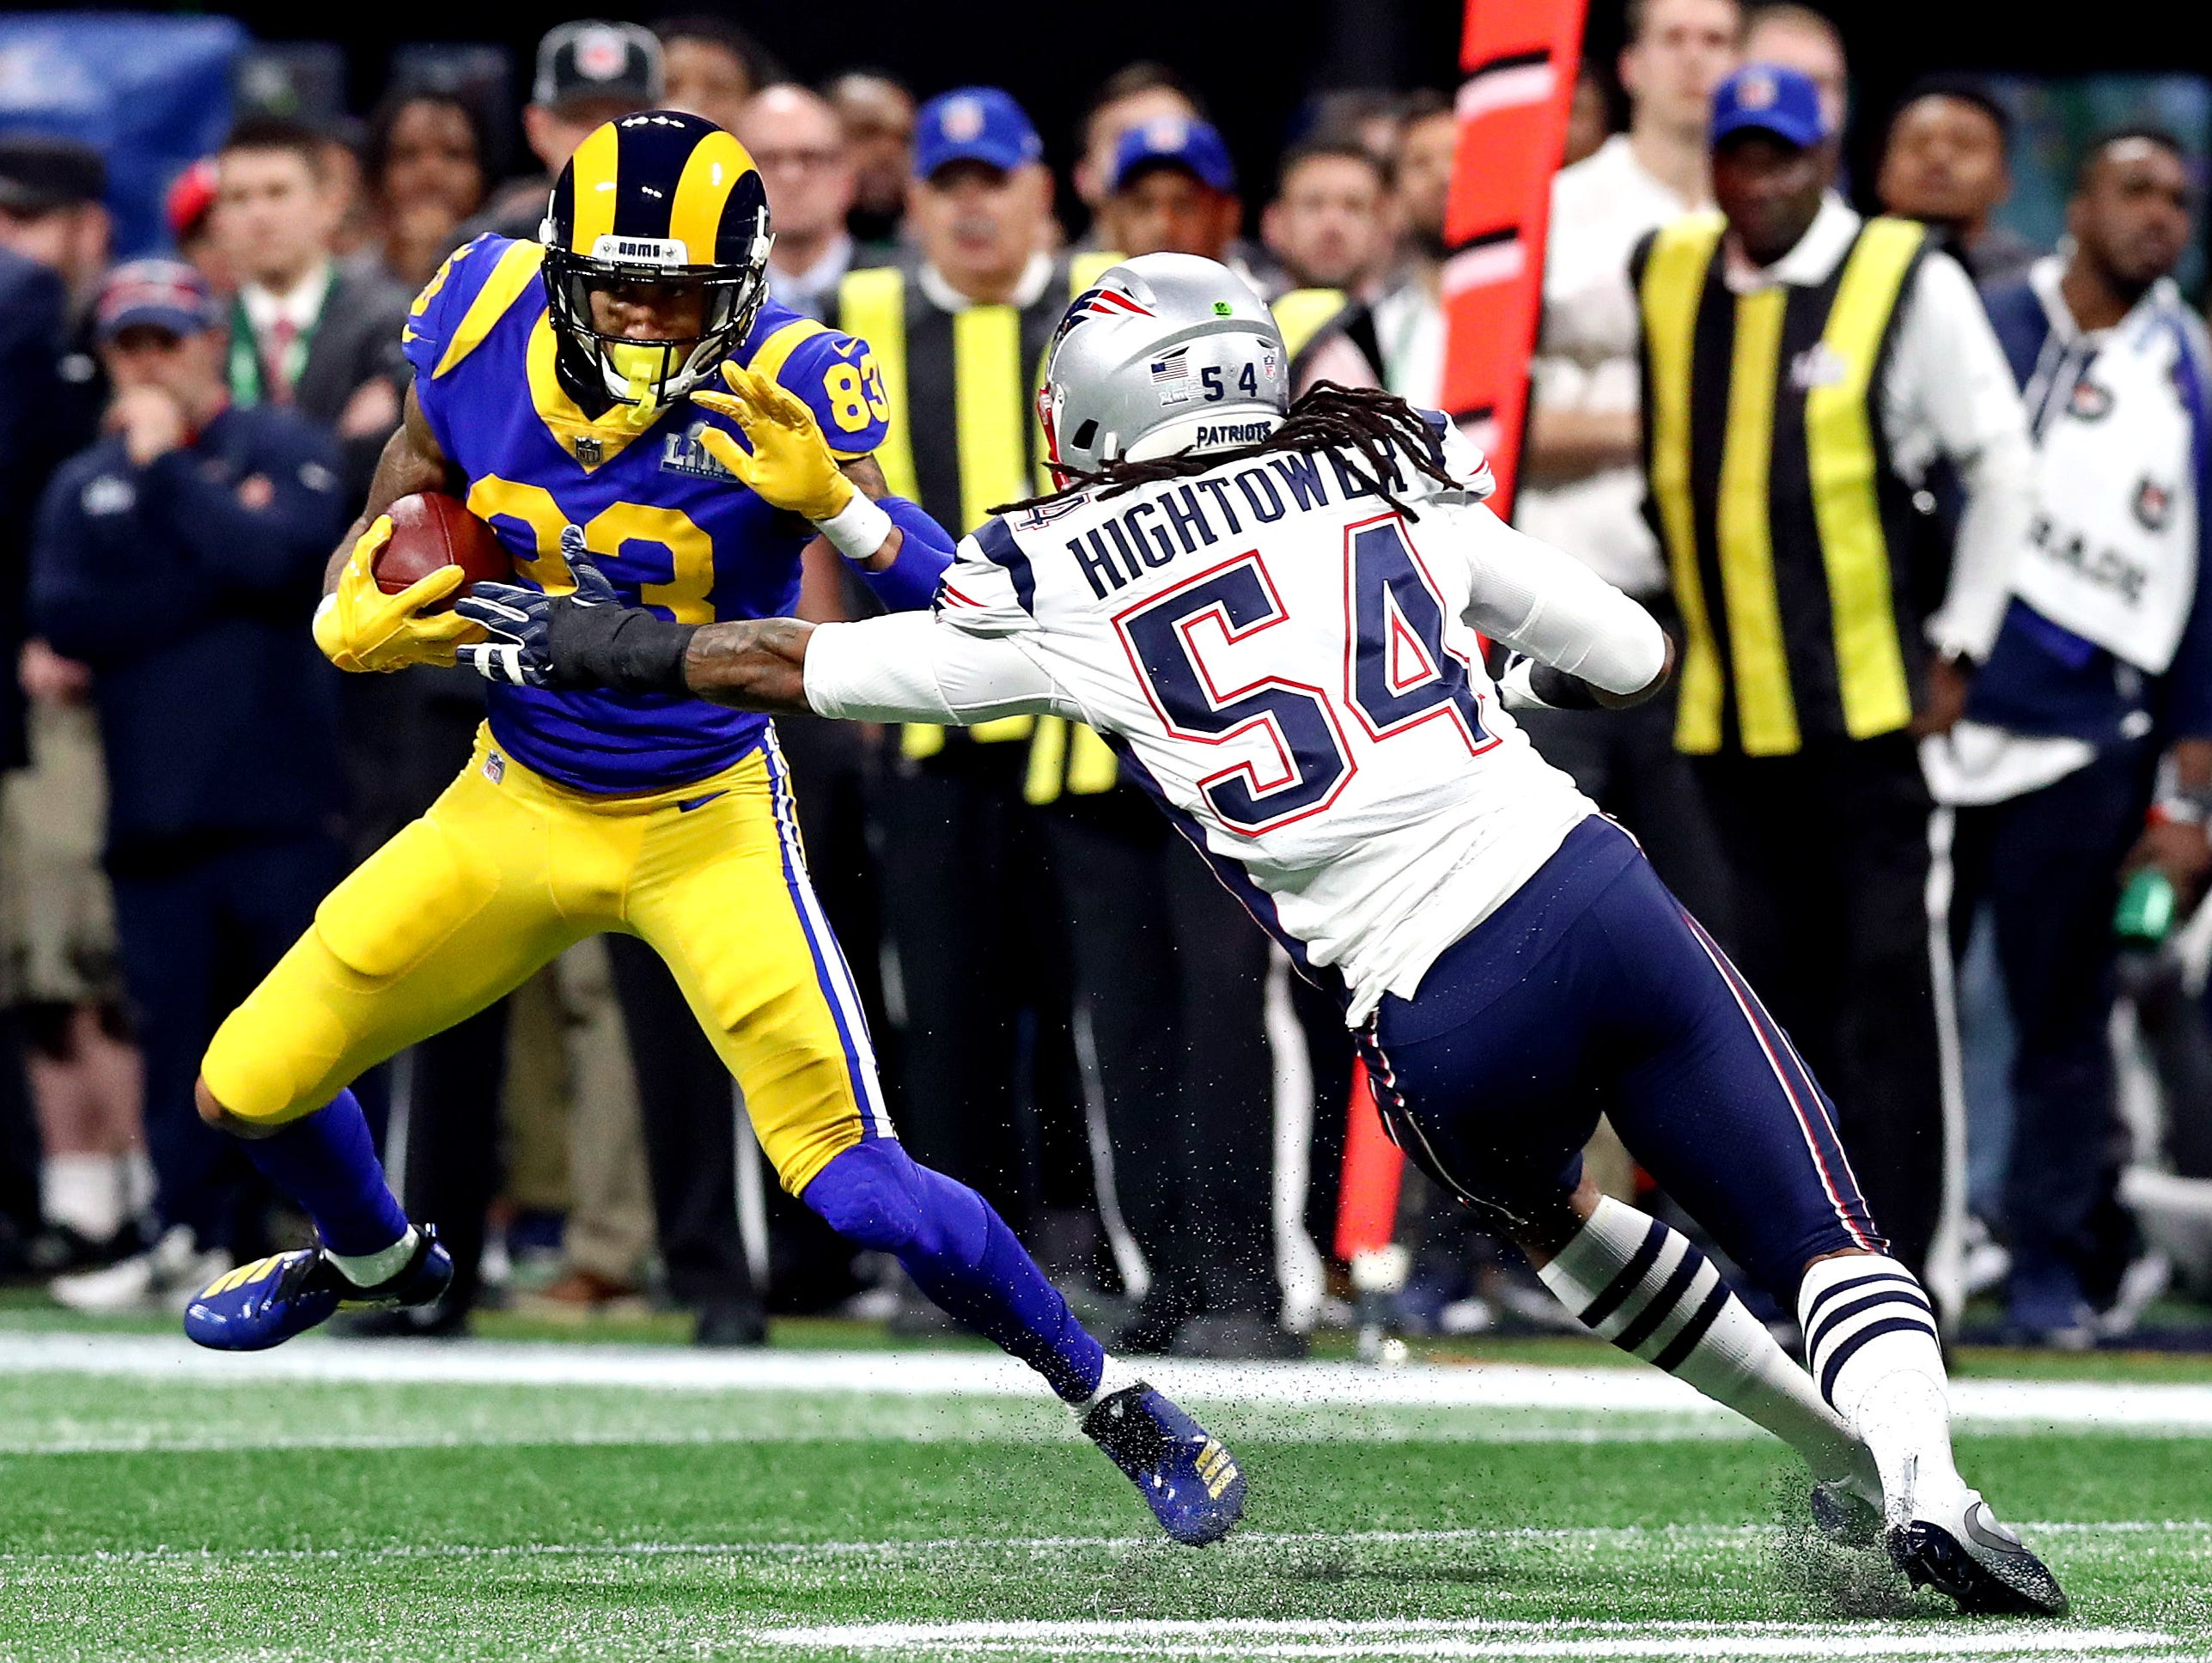 Los Angeles Rams wide receiver Josh Reynolds (83) runs the ball against New England Patriots outside linebacker Dont'a Hightower (54) during the first quarter of Super Bowl LIII.